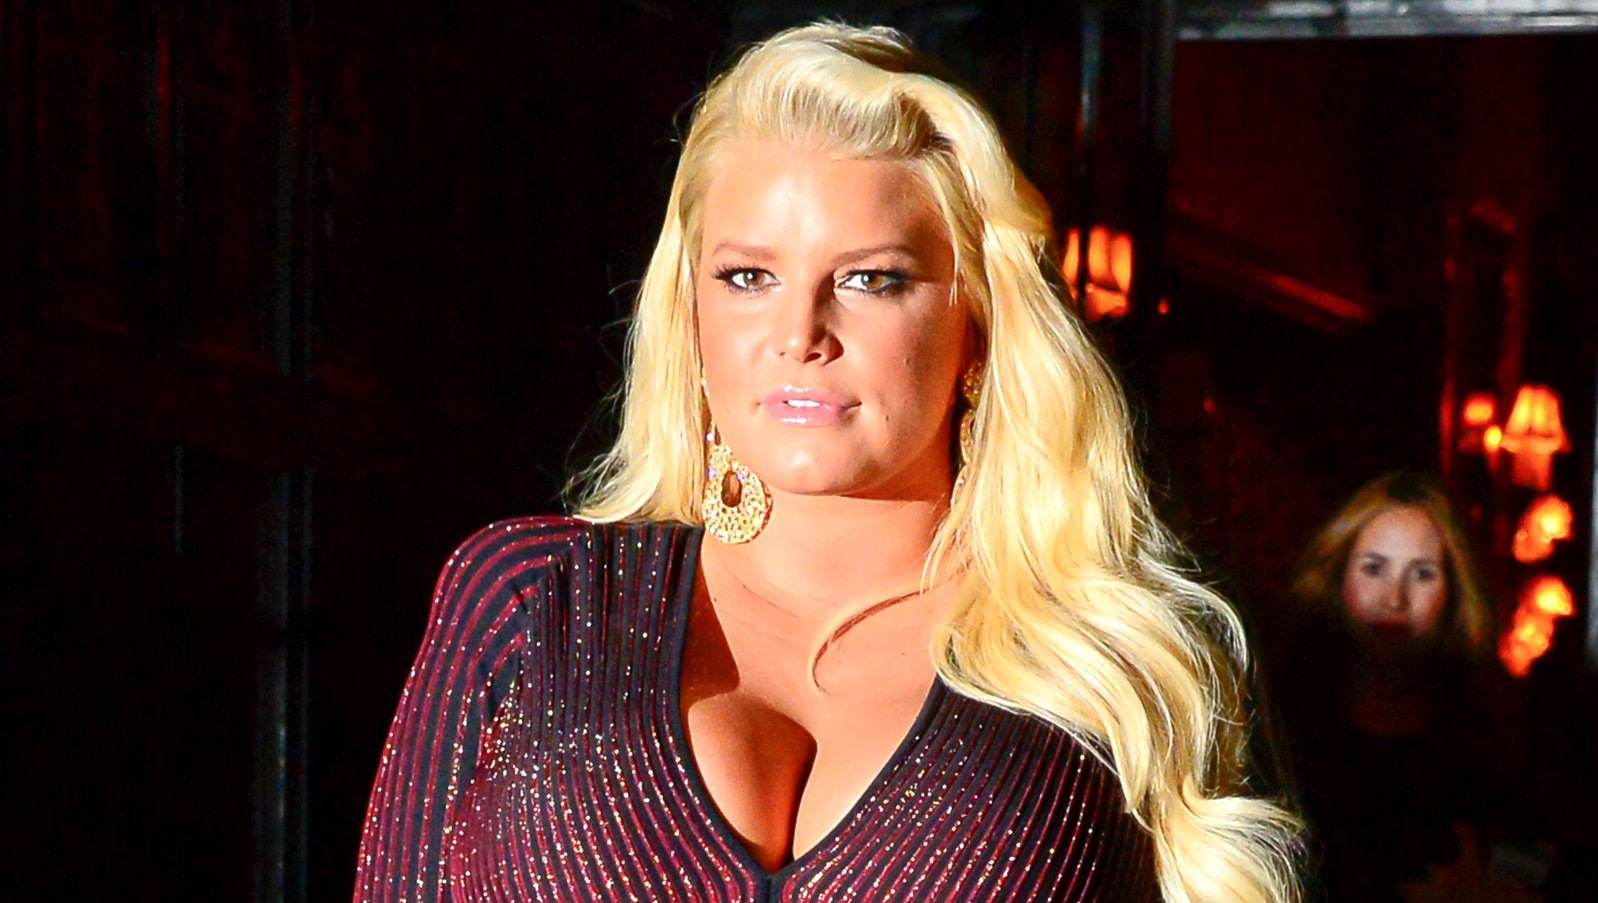 Pregnant Jessica Simpson Asks Fans for 'Help' After Revealing Extremely Swollen Foot